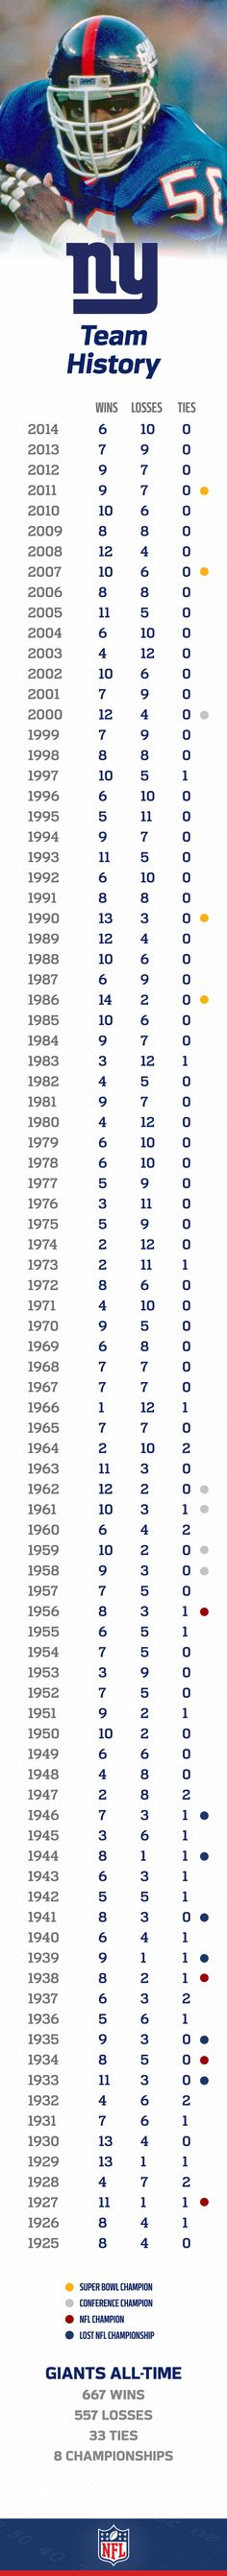 The New York Giants were one of the original 5 teams to join the NFL and since have had a long history of success. With 4 Super Bowl wins, they are one of the winningest teams in the league.